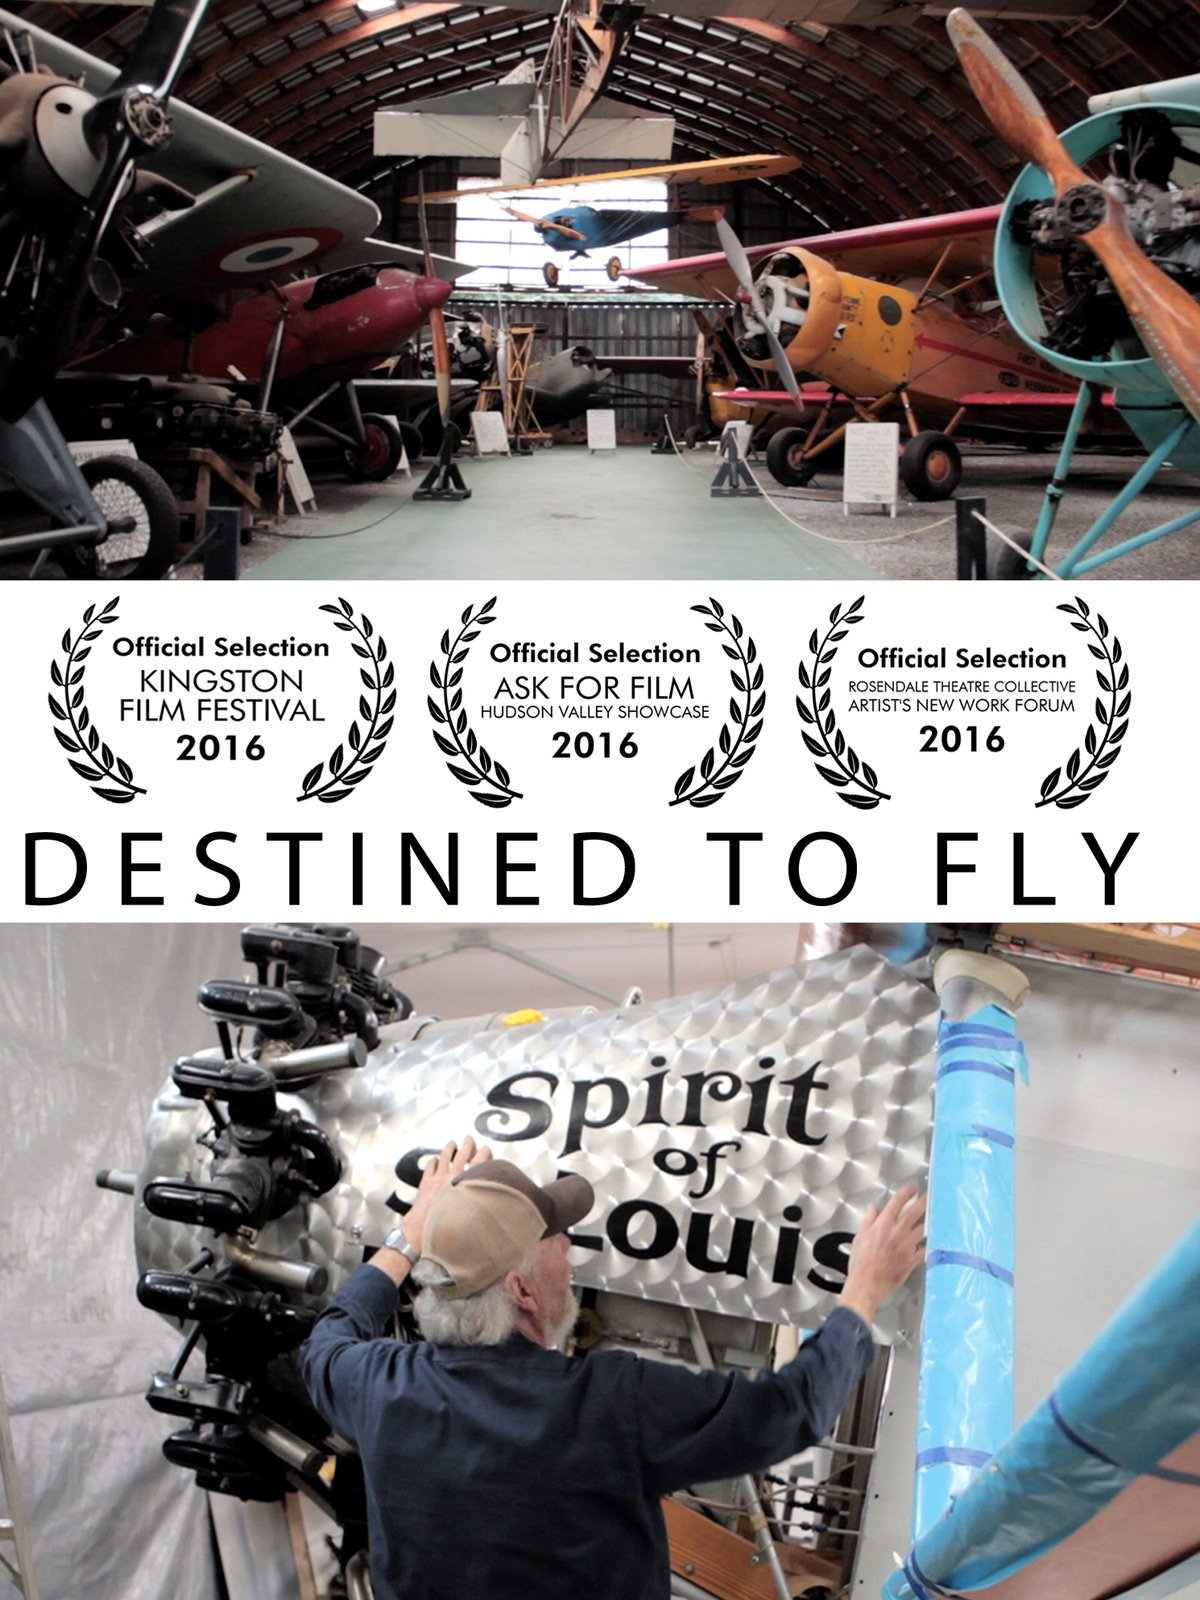 Destined To Fly by